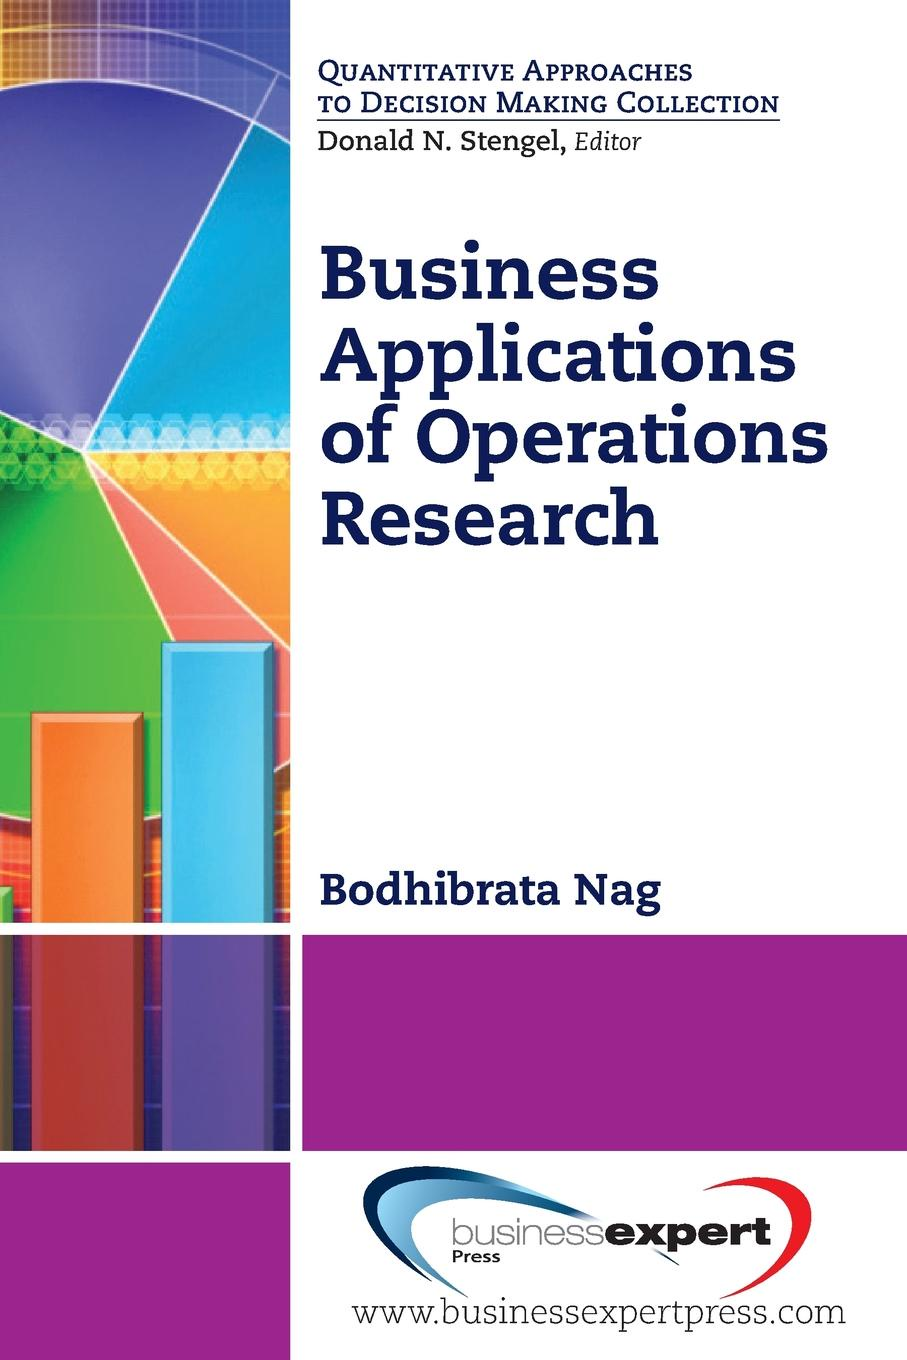 Bodhibrata Nag Business Applications of Operations Research salameh malik essential tools for operations management tools models and approaches for managers and consultants